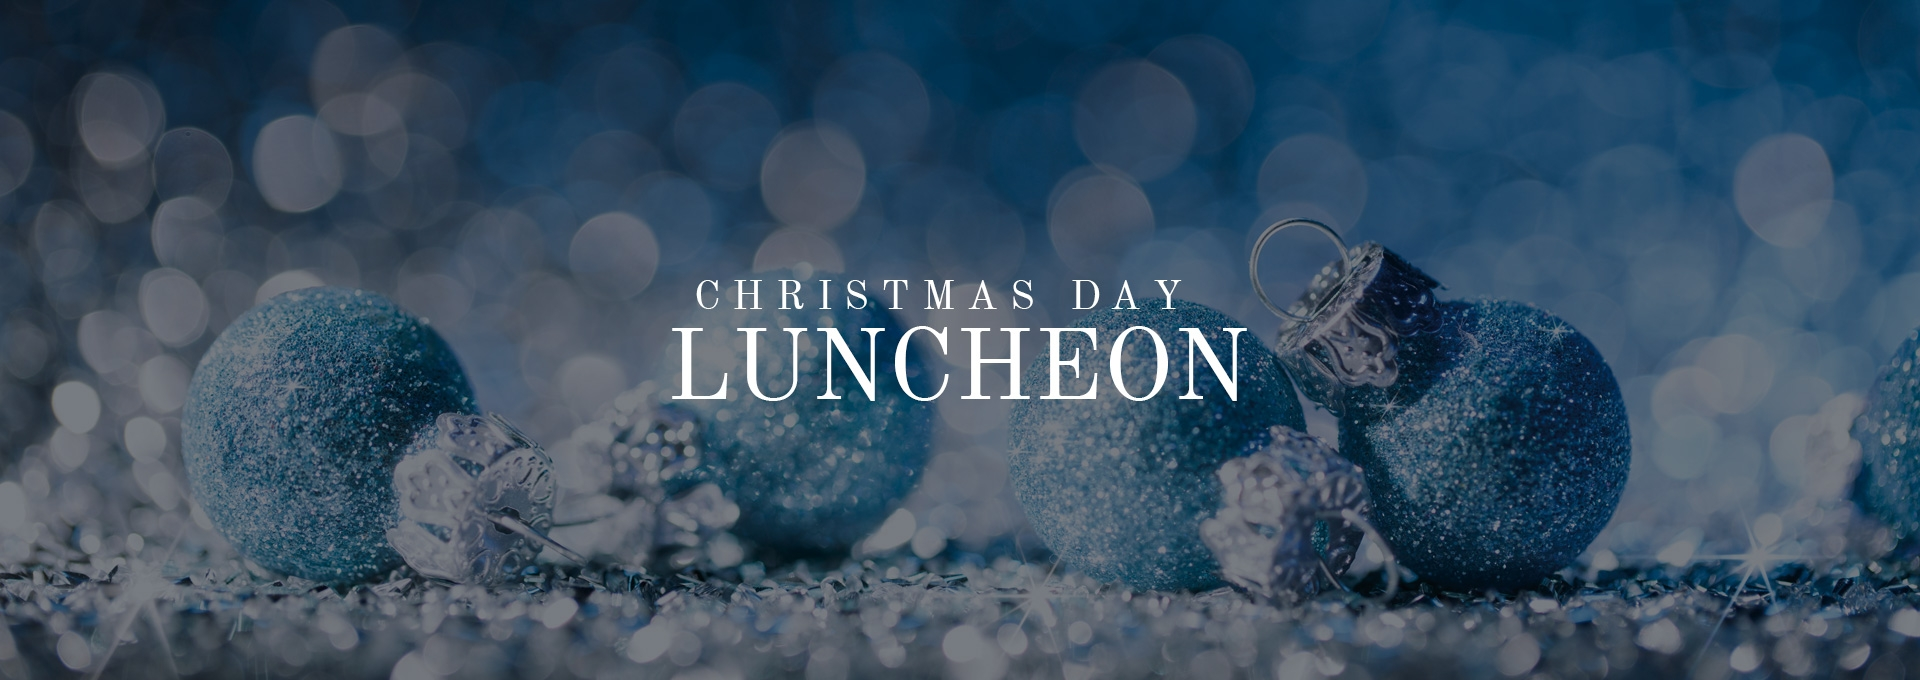 Christmas Day Luncheon Banner